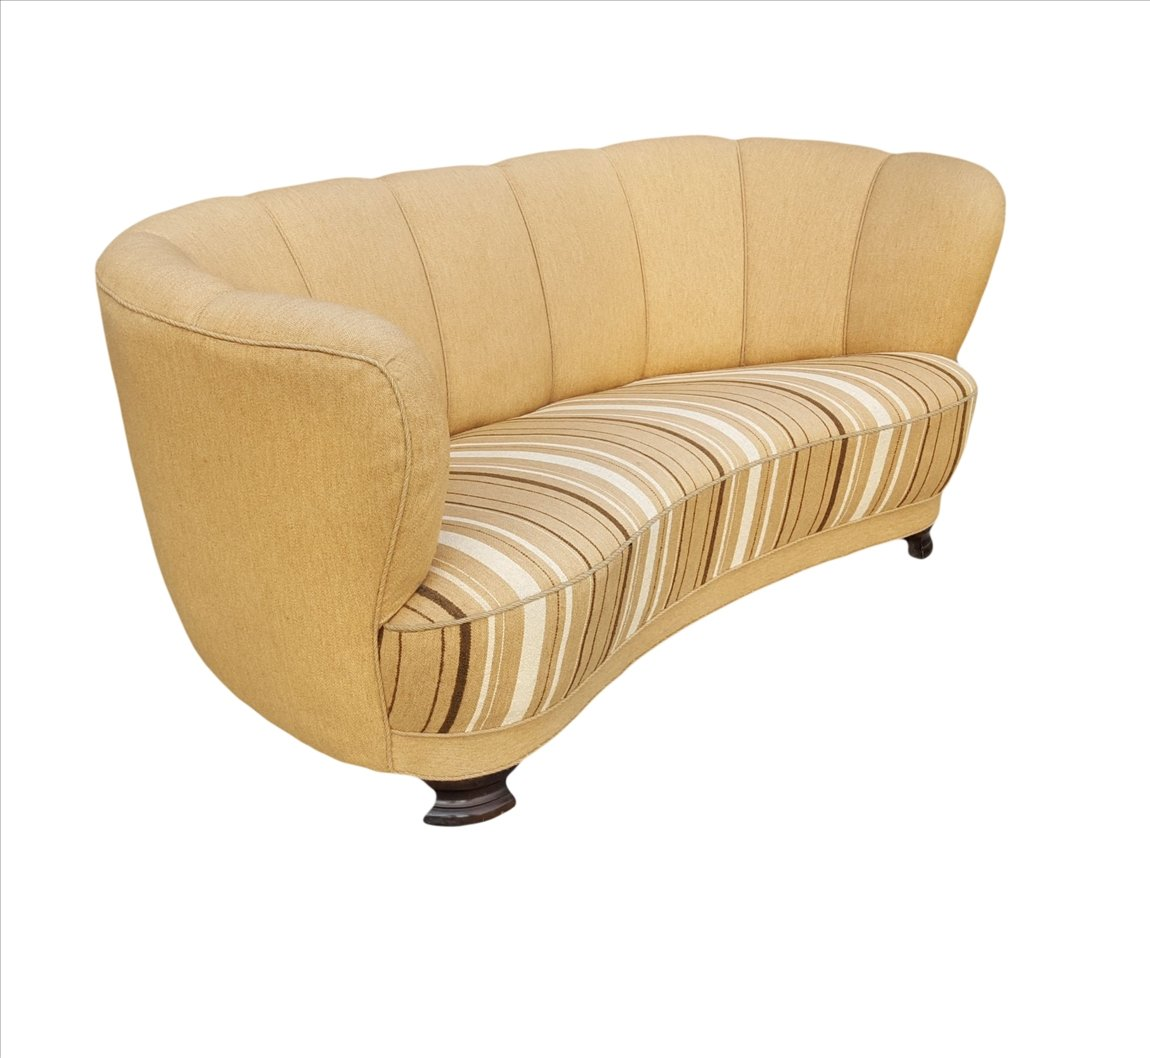 d nisches sofa in bananenform 1940er bei pamono kaufen. Black Bedroom Furniture Sets. Home Design Ideas